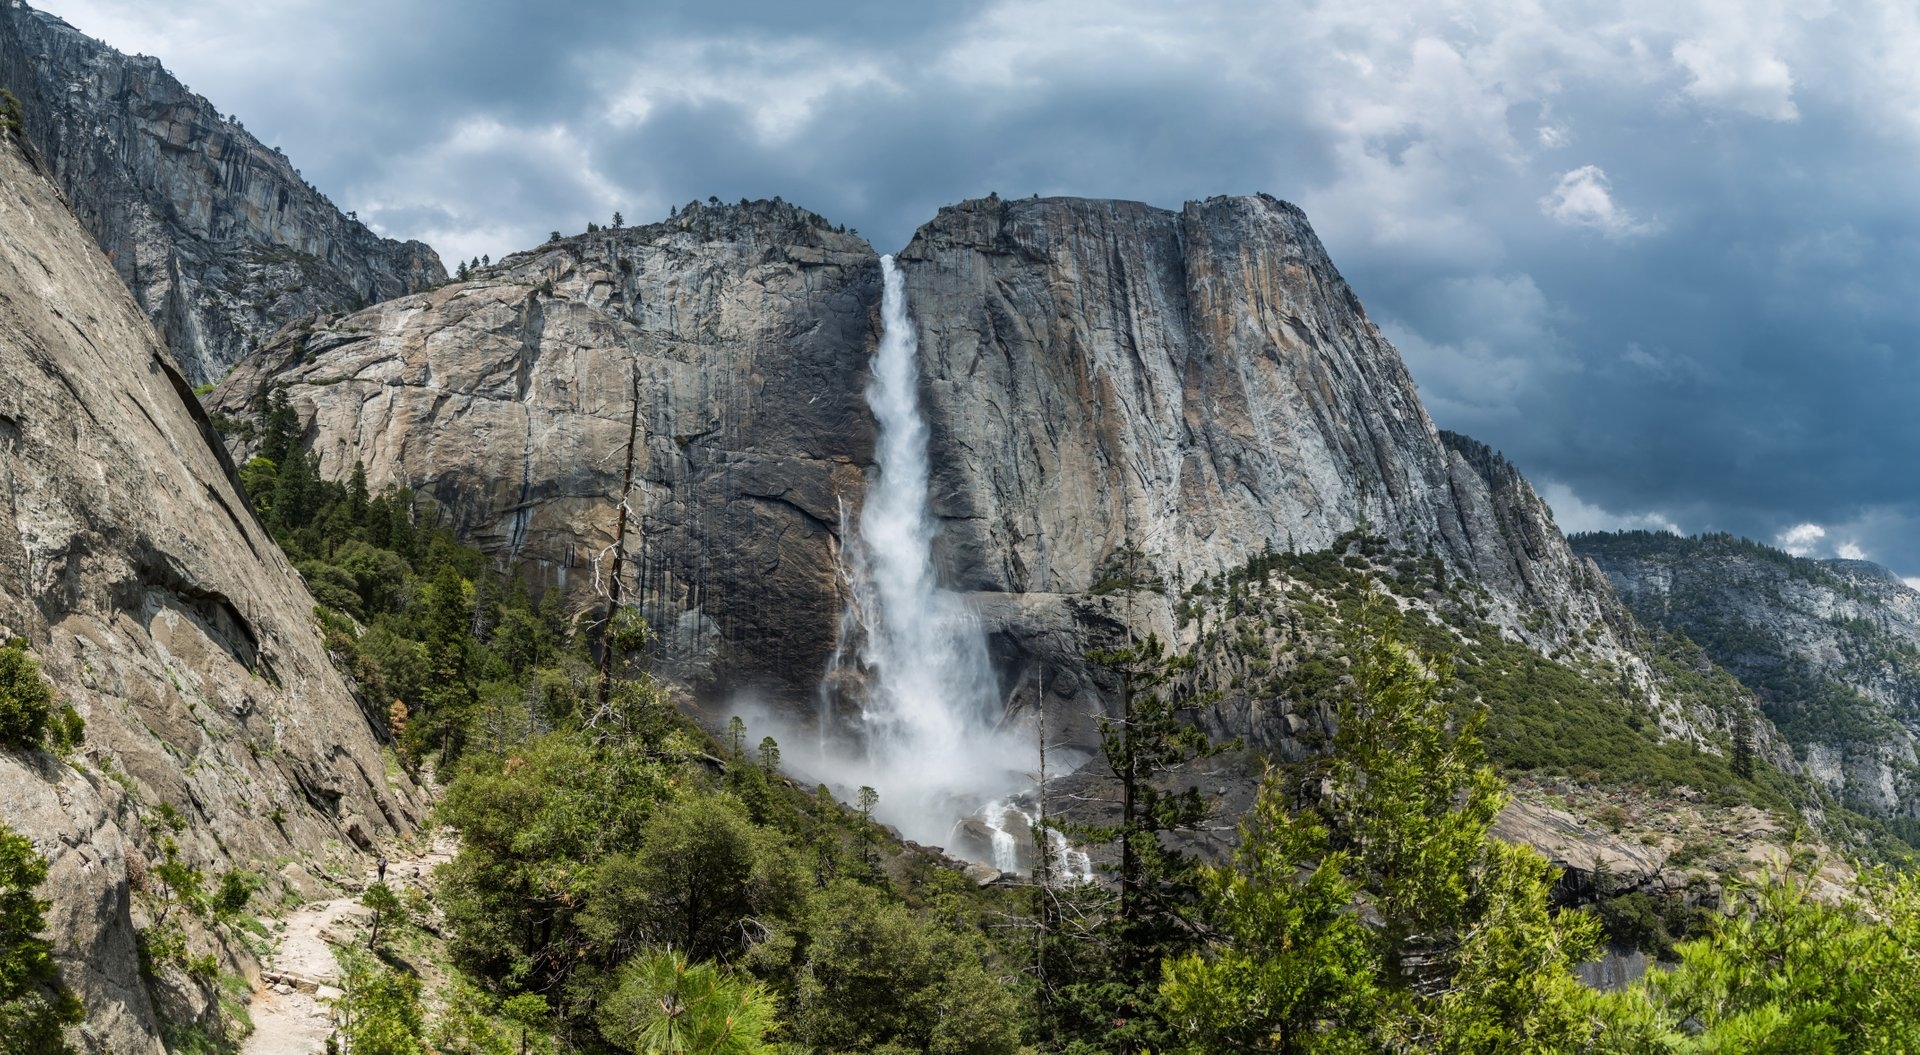 Yosemite Falls in Yosemite 2020 - Best Time